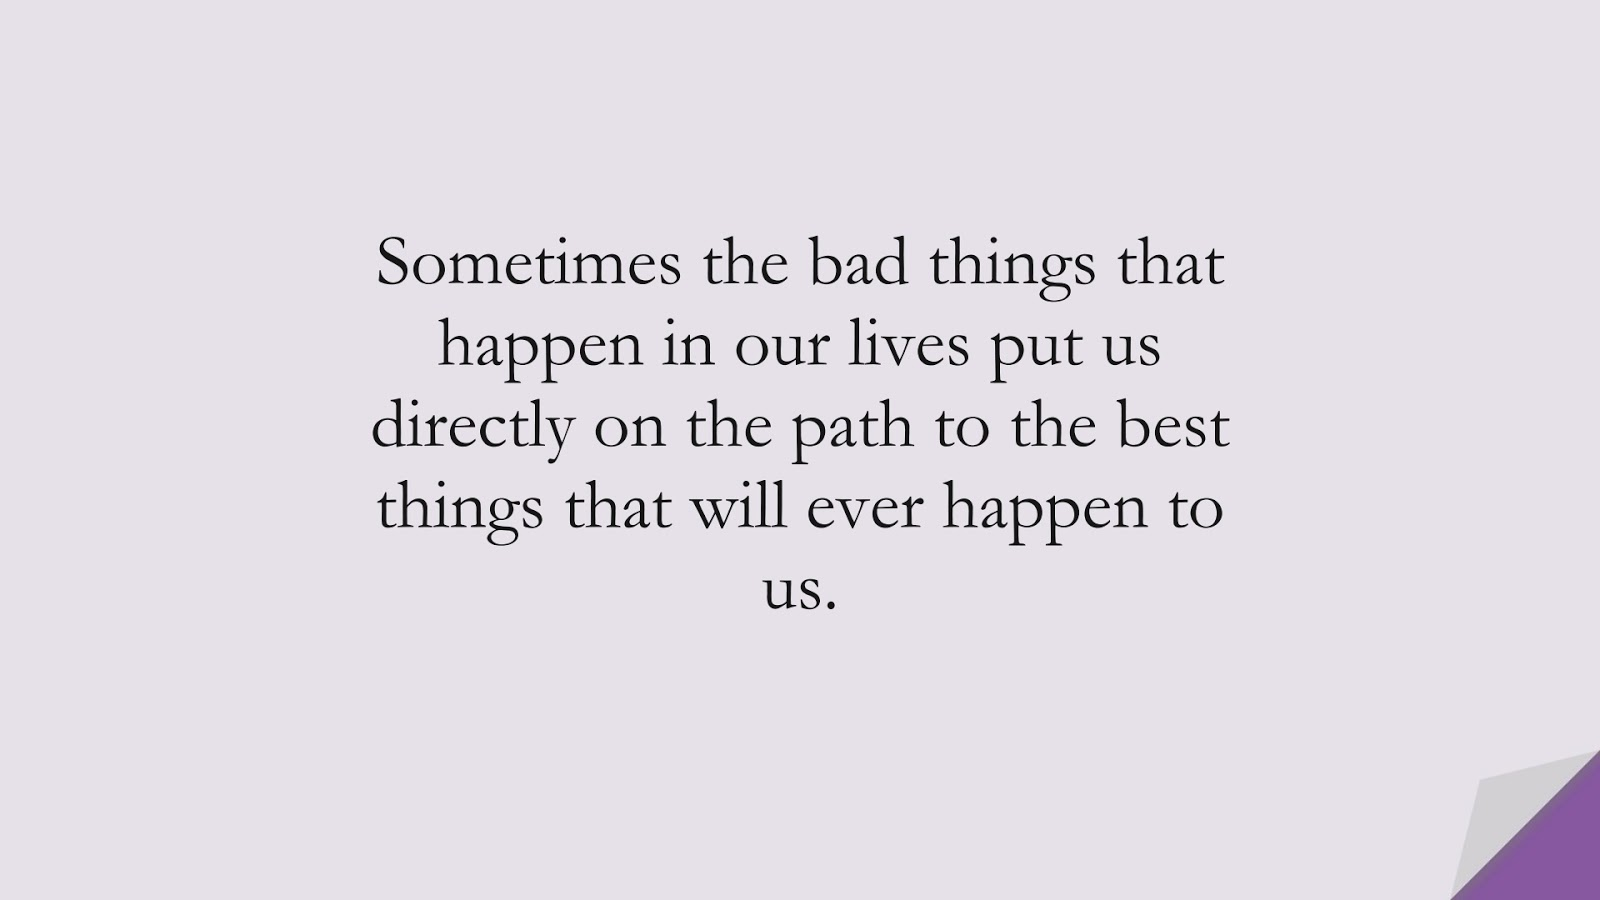 Sometimes the bad things that happen in our lives put us directly on the path to the best things that will ever happen to us.FALSE